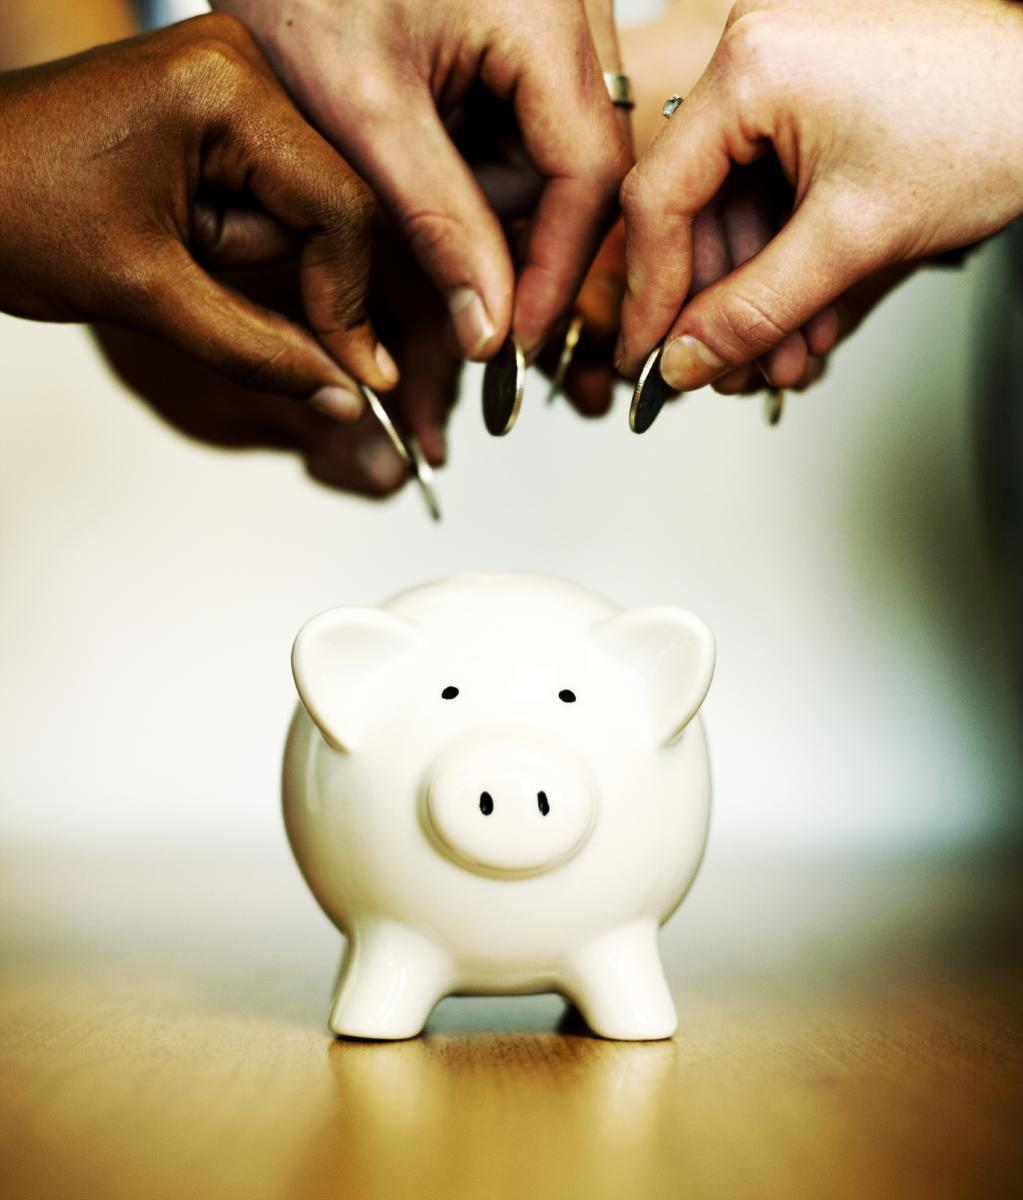 Picture of hands putting change in a piggybank